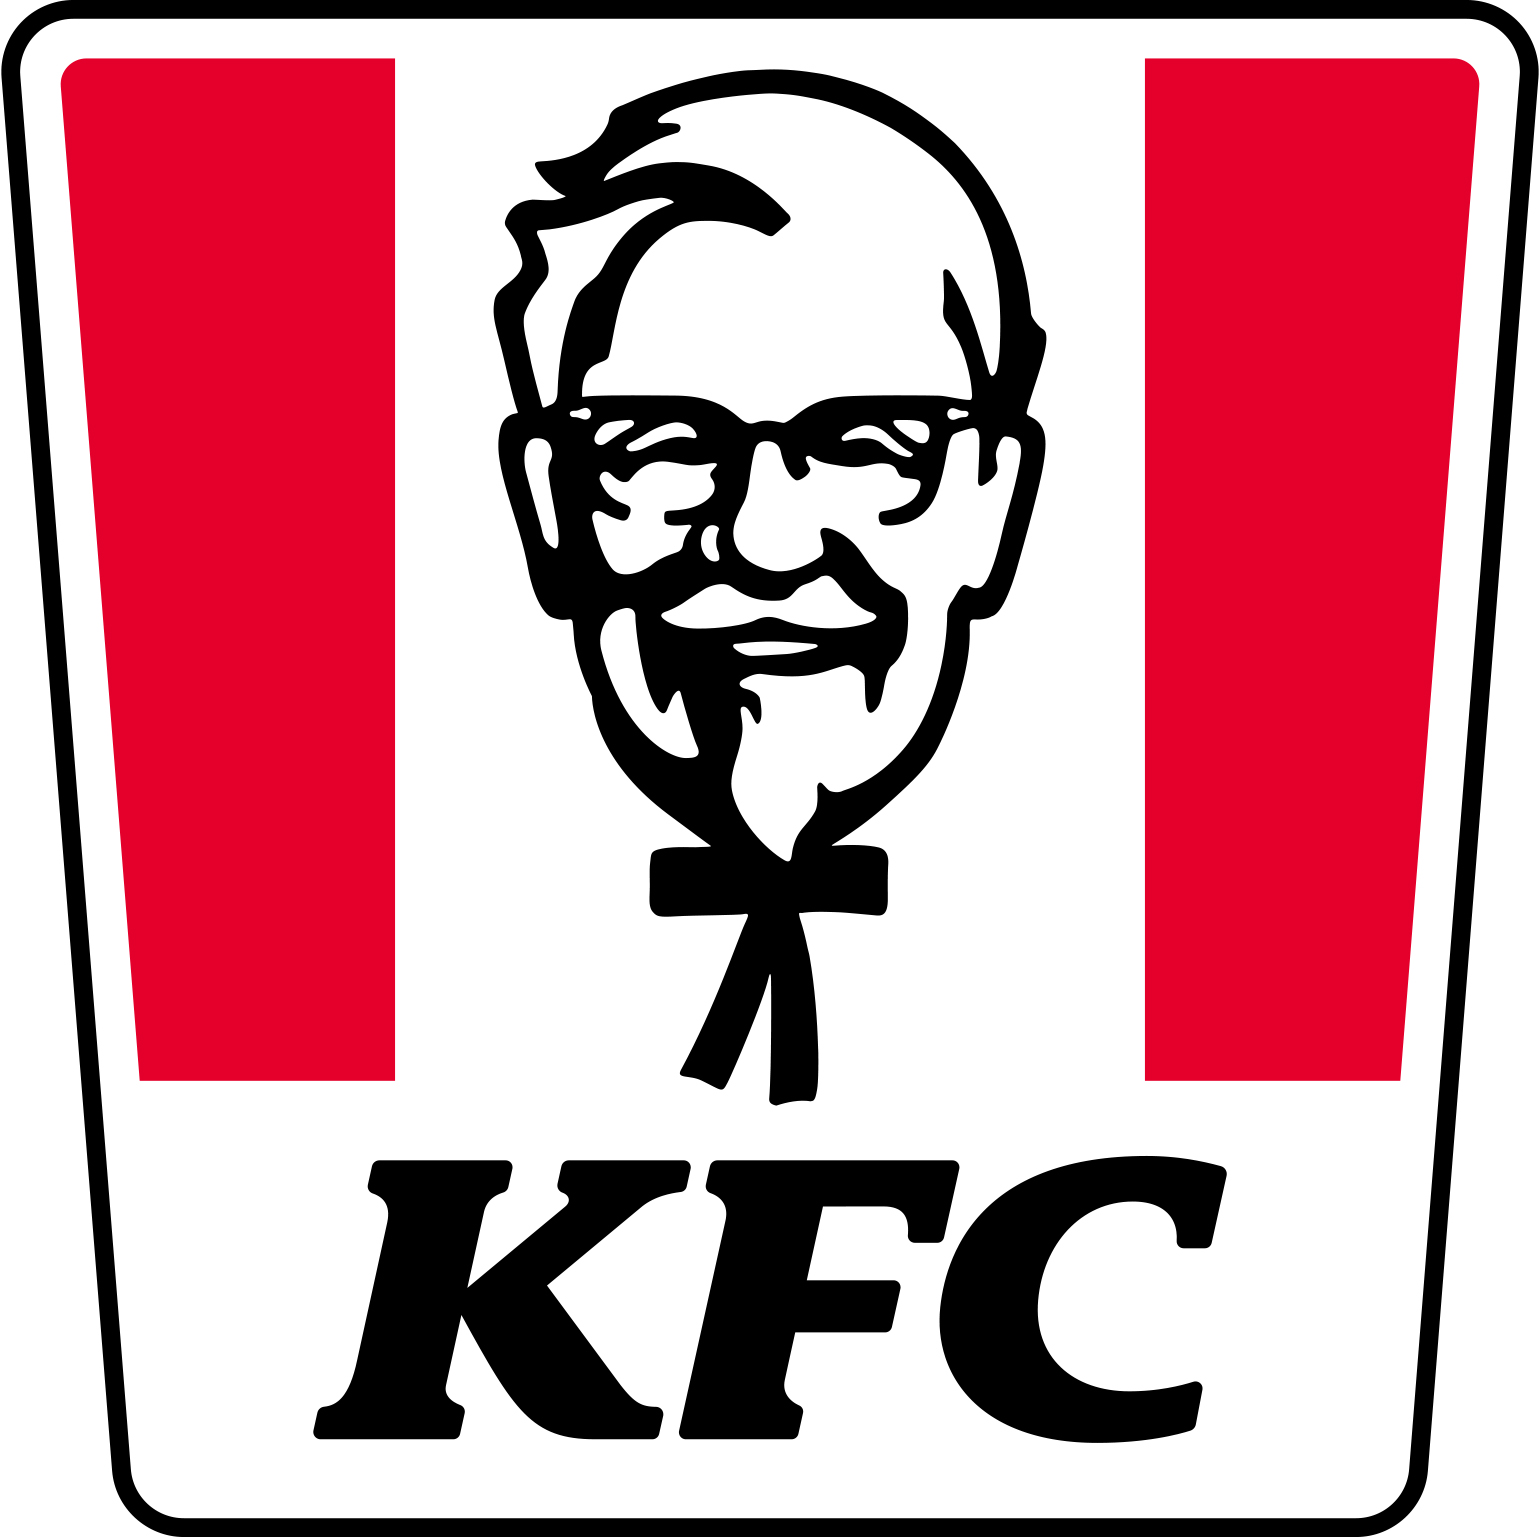 KFC - KENTUCKY FRIED CHICKEN OPENS IN CAMPANIA AND REACHES 40 RESTAURANTS IN ITALY